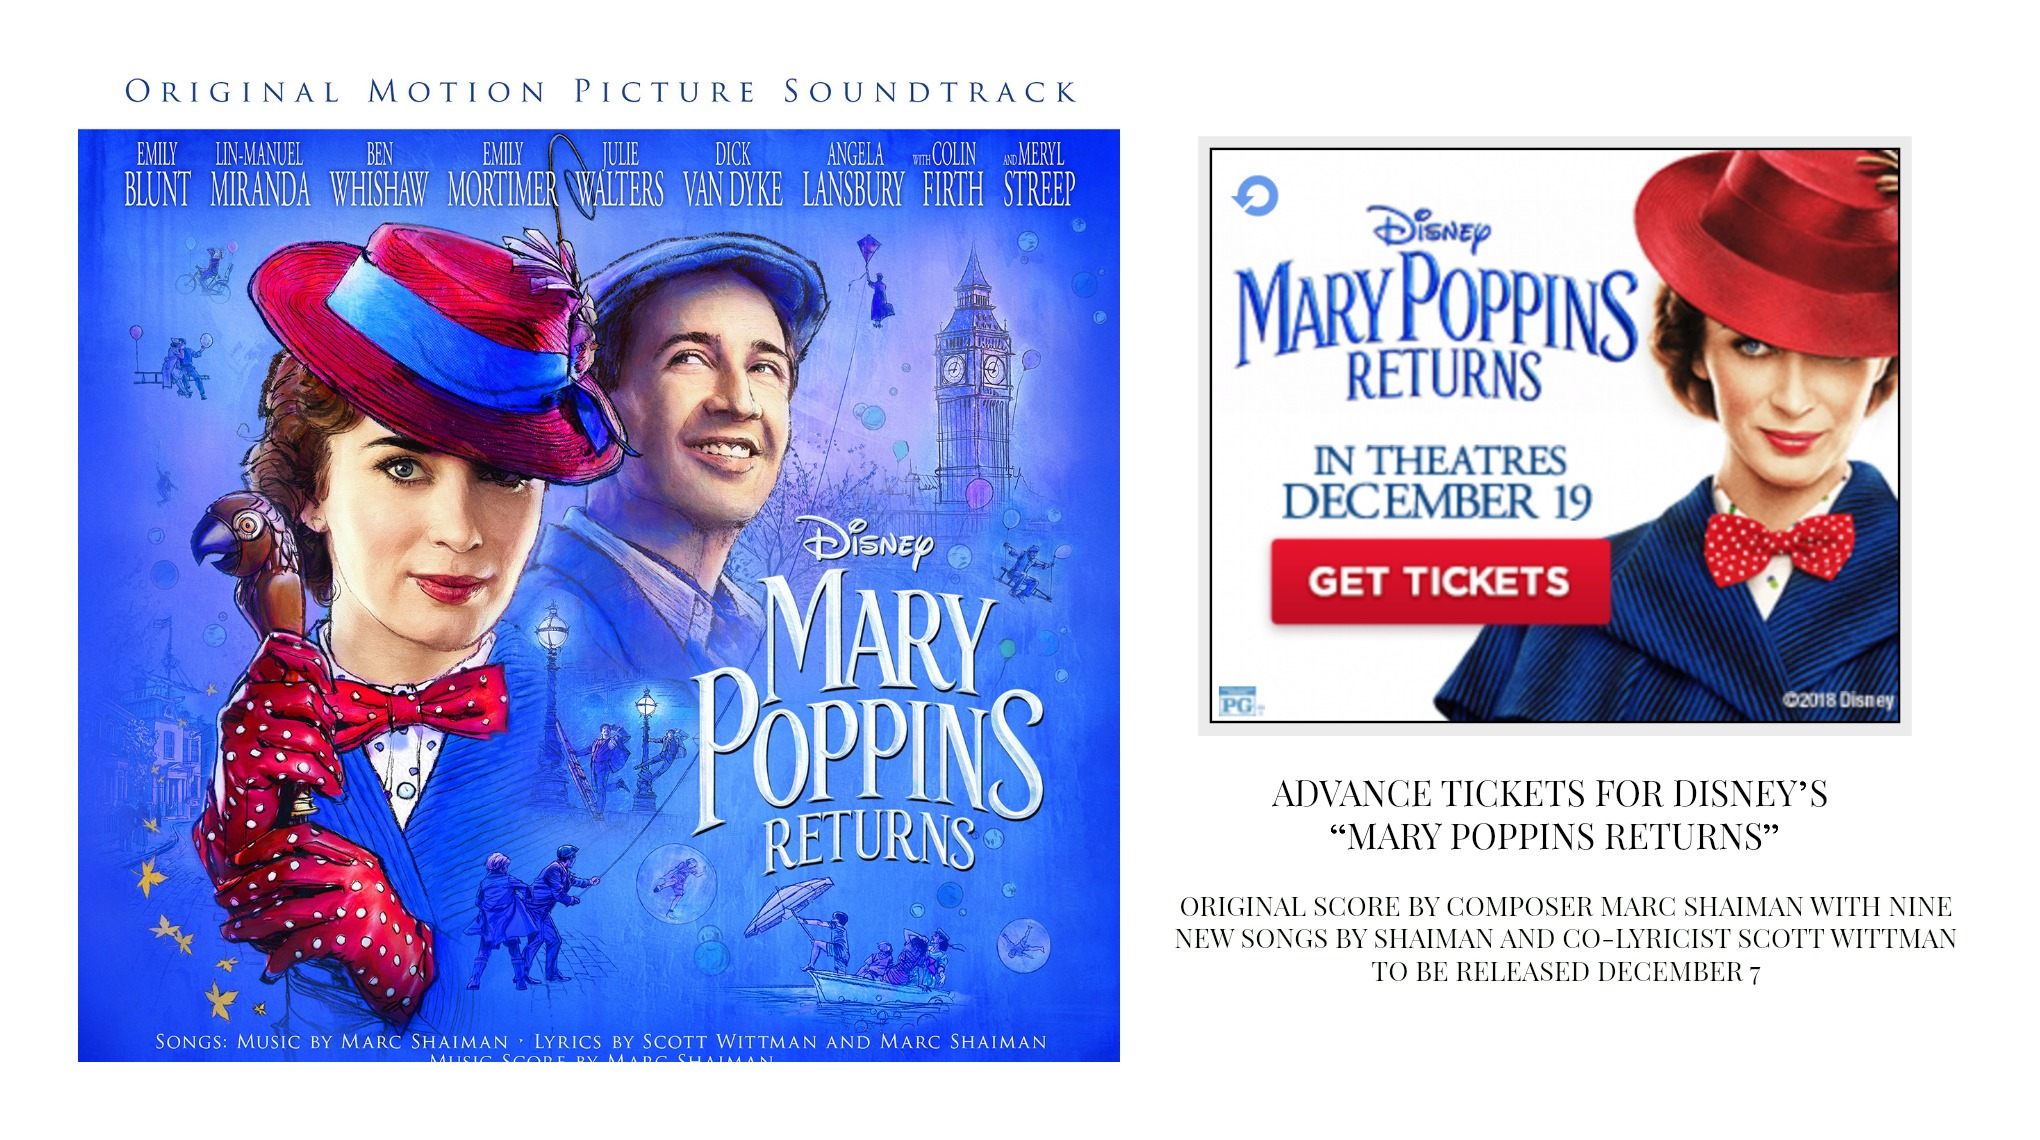 """ADVANCE TICKETS FOR DISNEY'S """"MARY POPPINS RETURNS"""""""